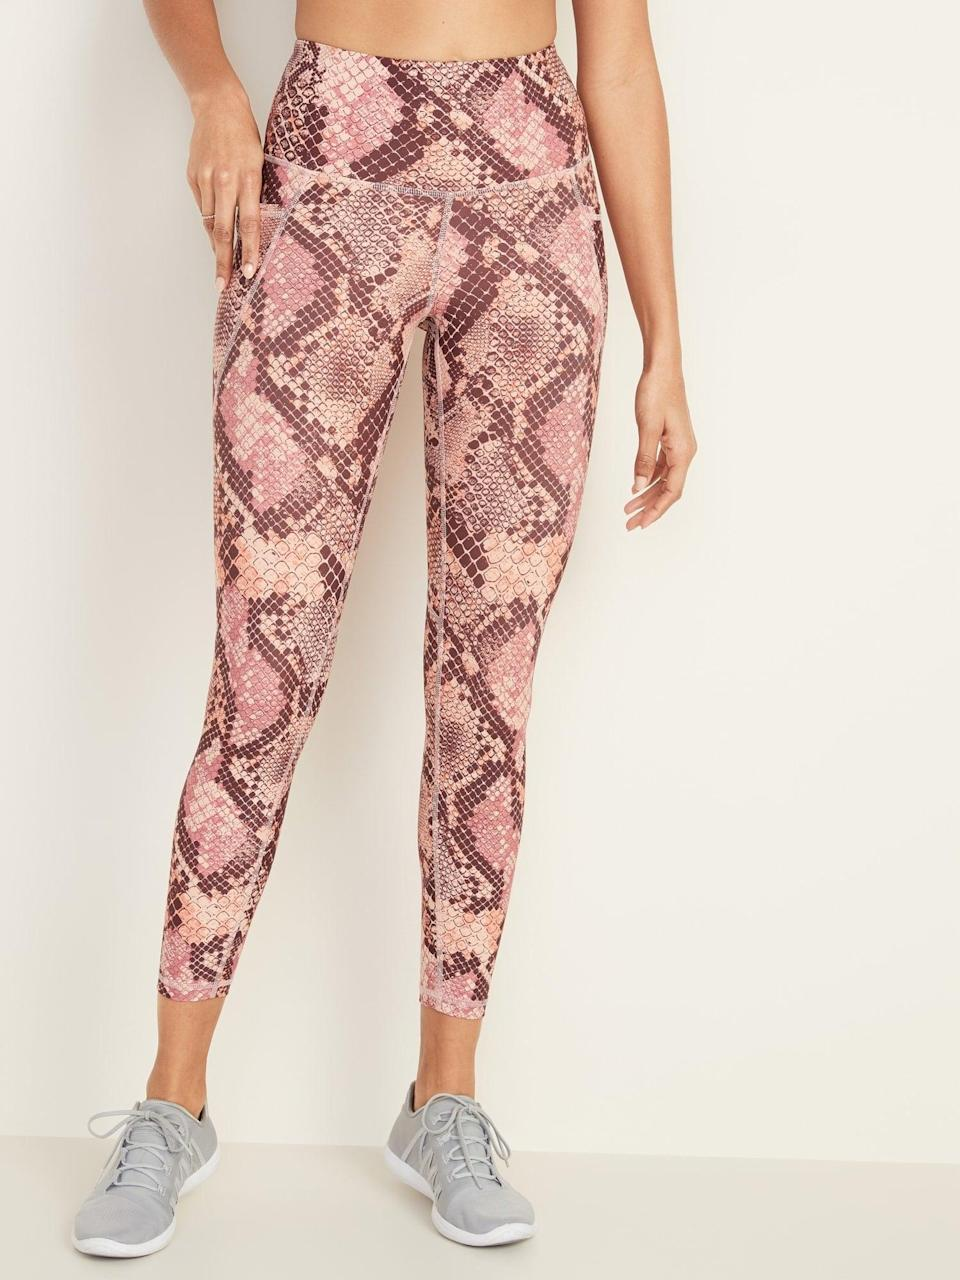 """<p>If you're looking for a pattern pair of leggings, opt for these <a href=""""https://www.popsugar.com/buy/Old-Navy-High-Waisted-Elevate-Powersoft-78-Length-Side-Pocket-Leggings-547979?p_name=Old%20Navy%20High-Waisted%20Elevate%20Powersoft%207%2F8-Length%20Side-Pocket%20Leggings&retailer=oldnavy.gap.com&pid=547979&price=37&evar1=fit%3Aus&evar9=47203531&evar98=https%3A%2F%2Fwww.popsugar.com%2Ffitness%2Fphoto-gallery%2F47203531%2Fimage%2F47203532%2FOld-Navy-High-Waisted-Elevate-Powersoft-78-Length-Side-Pocket-Leggings&list1=old%20navy%2Cworkout%20clothes%2Ceditors%20pick%2Cfitness%20gear%2Cfitness%20shopping&prop13=mobile&pdata=1"""" class=""""link rapid-noclick-resp"""" rel=""""nofollow noopener"""" target=""""_blank"""" data-ylk=""""slk:Old Navy High-Waisted Elevate Powersoft 7/8-Length Side-Pocket Leggings"""">Old Navy High-Waisted Elevate Powersoft 7/8-Length Side-Pocket Leggings</a> ($37, originally $40) in the pink snake-print choice.</p>"""